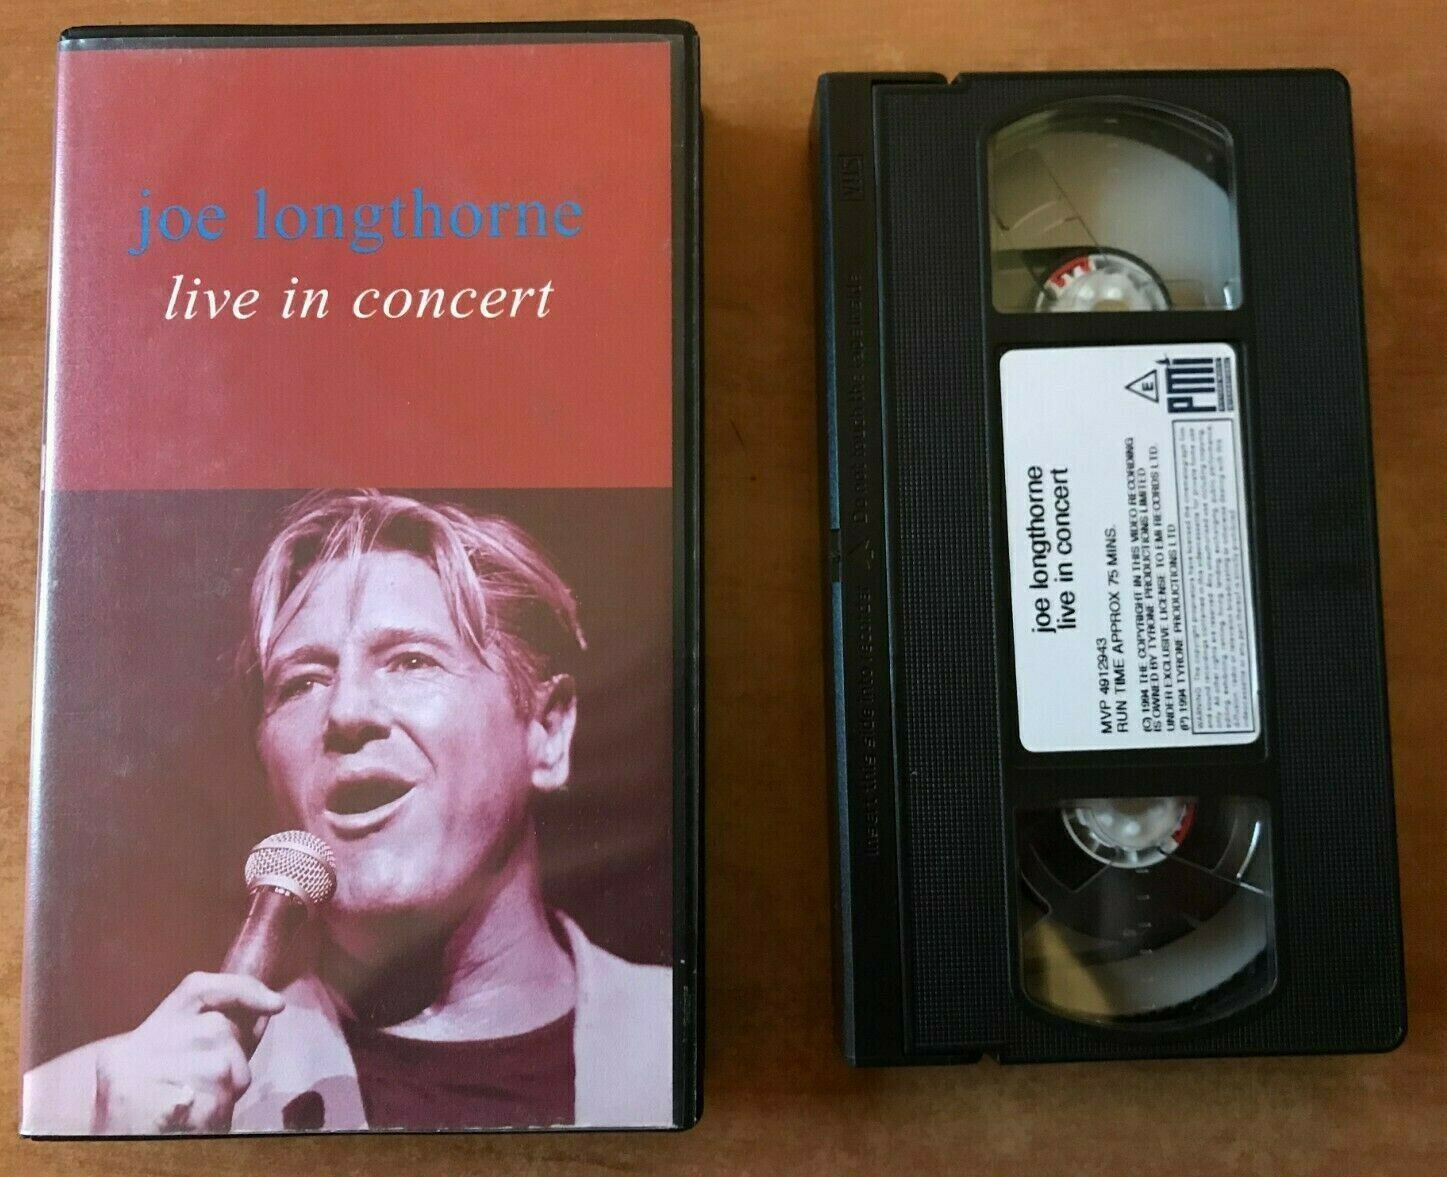 Joe Longthorne: Live In Concert - 'Crazy' - 'Stand By Me' - 'Hello Dolly' - VHS